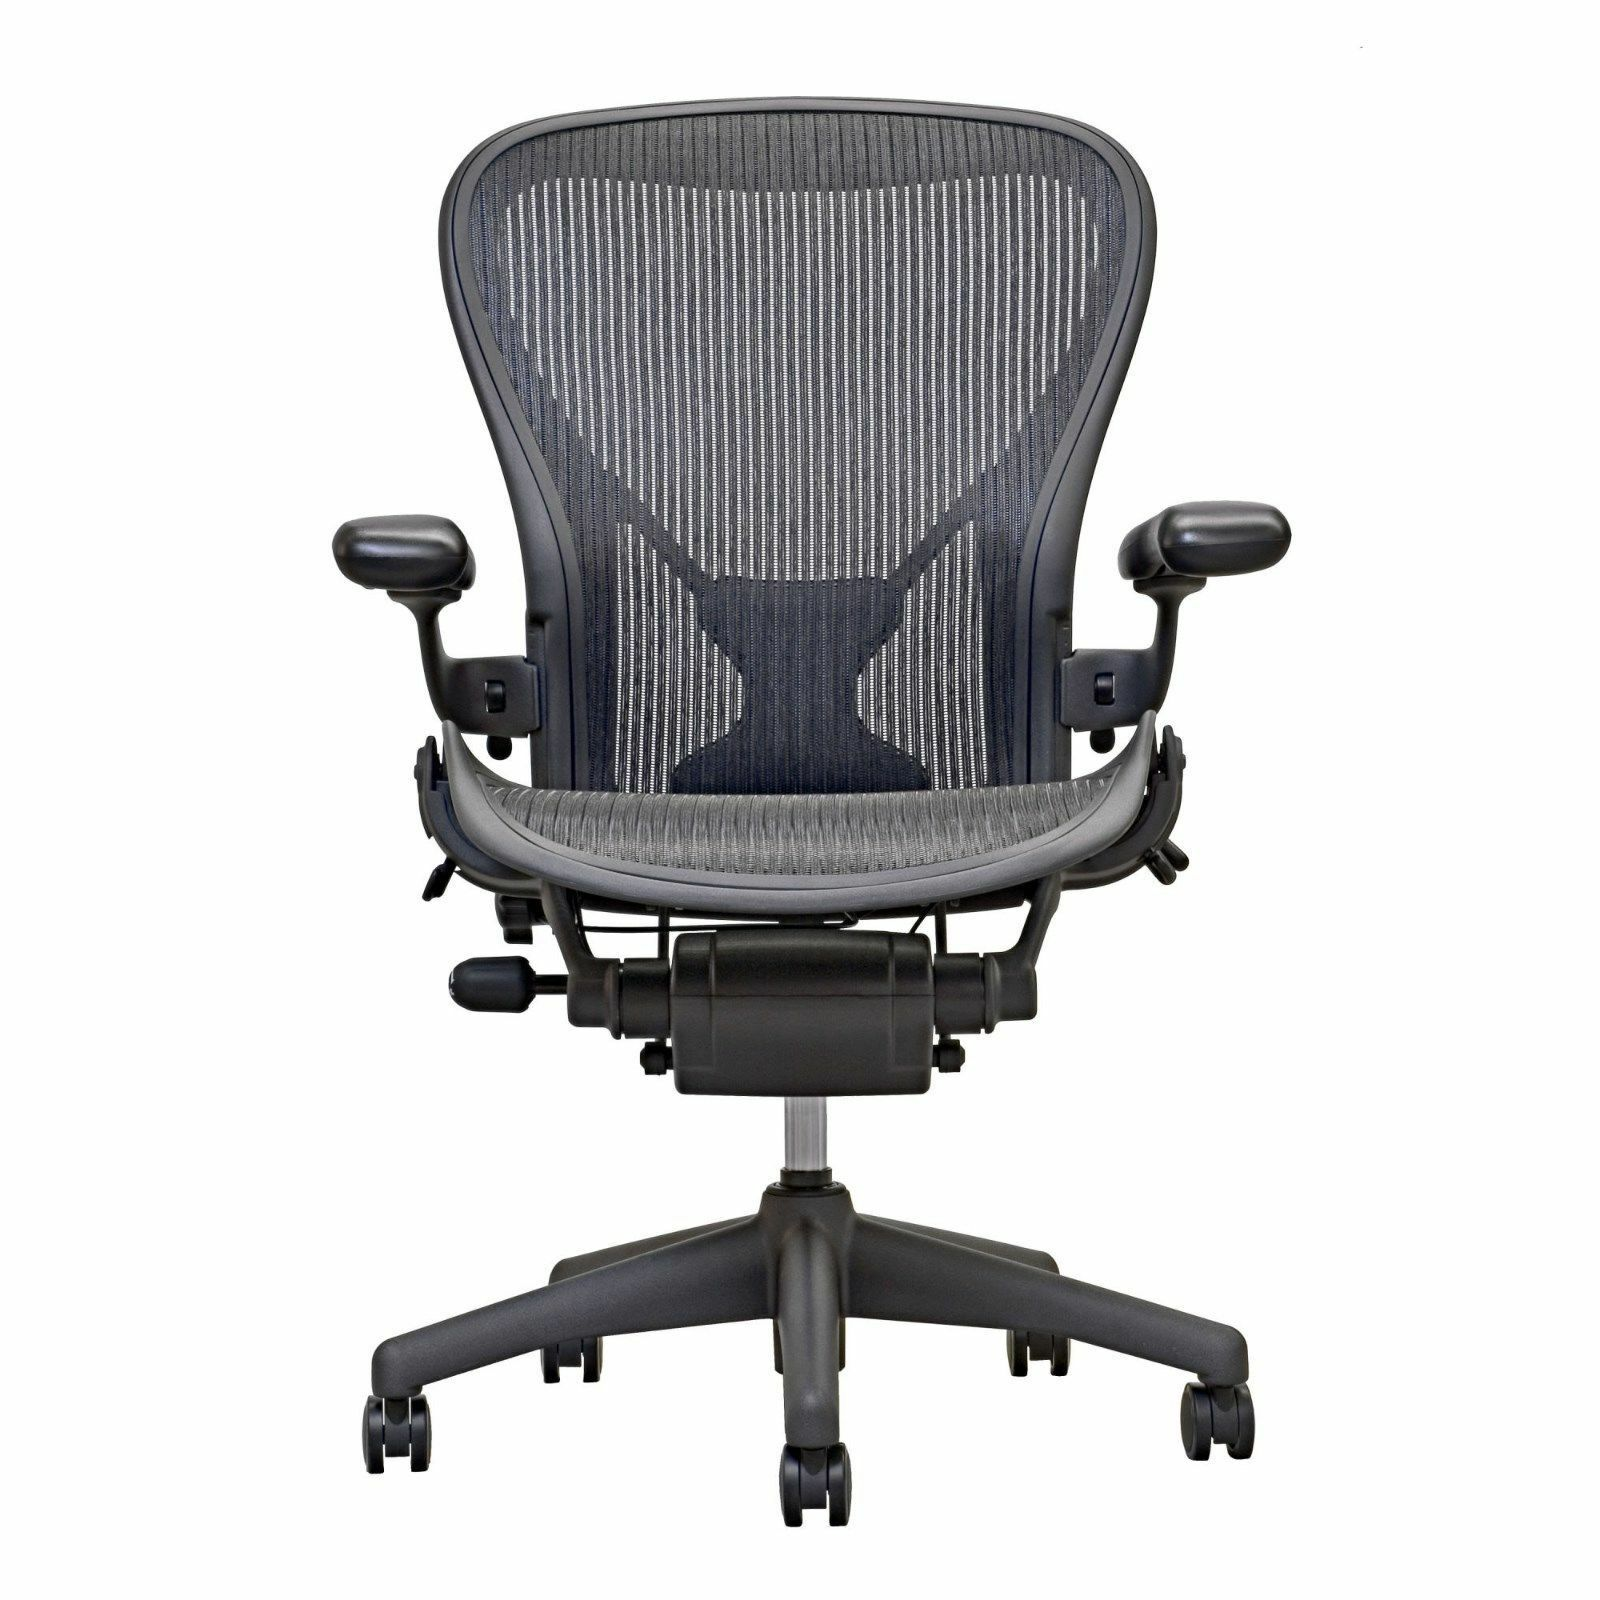 fully loaded posture fit size b aeron